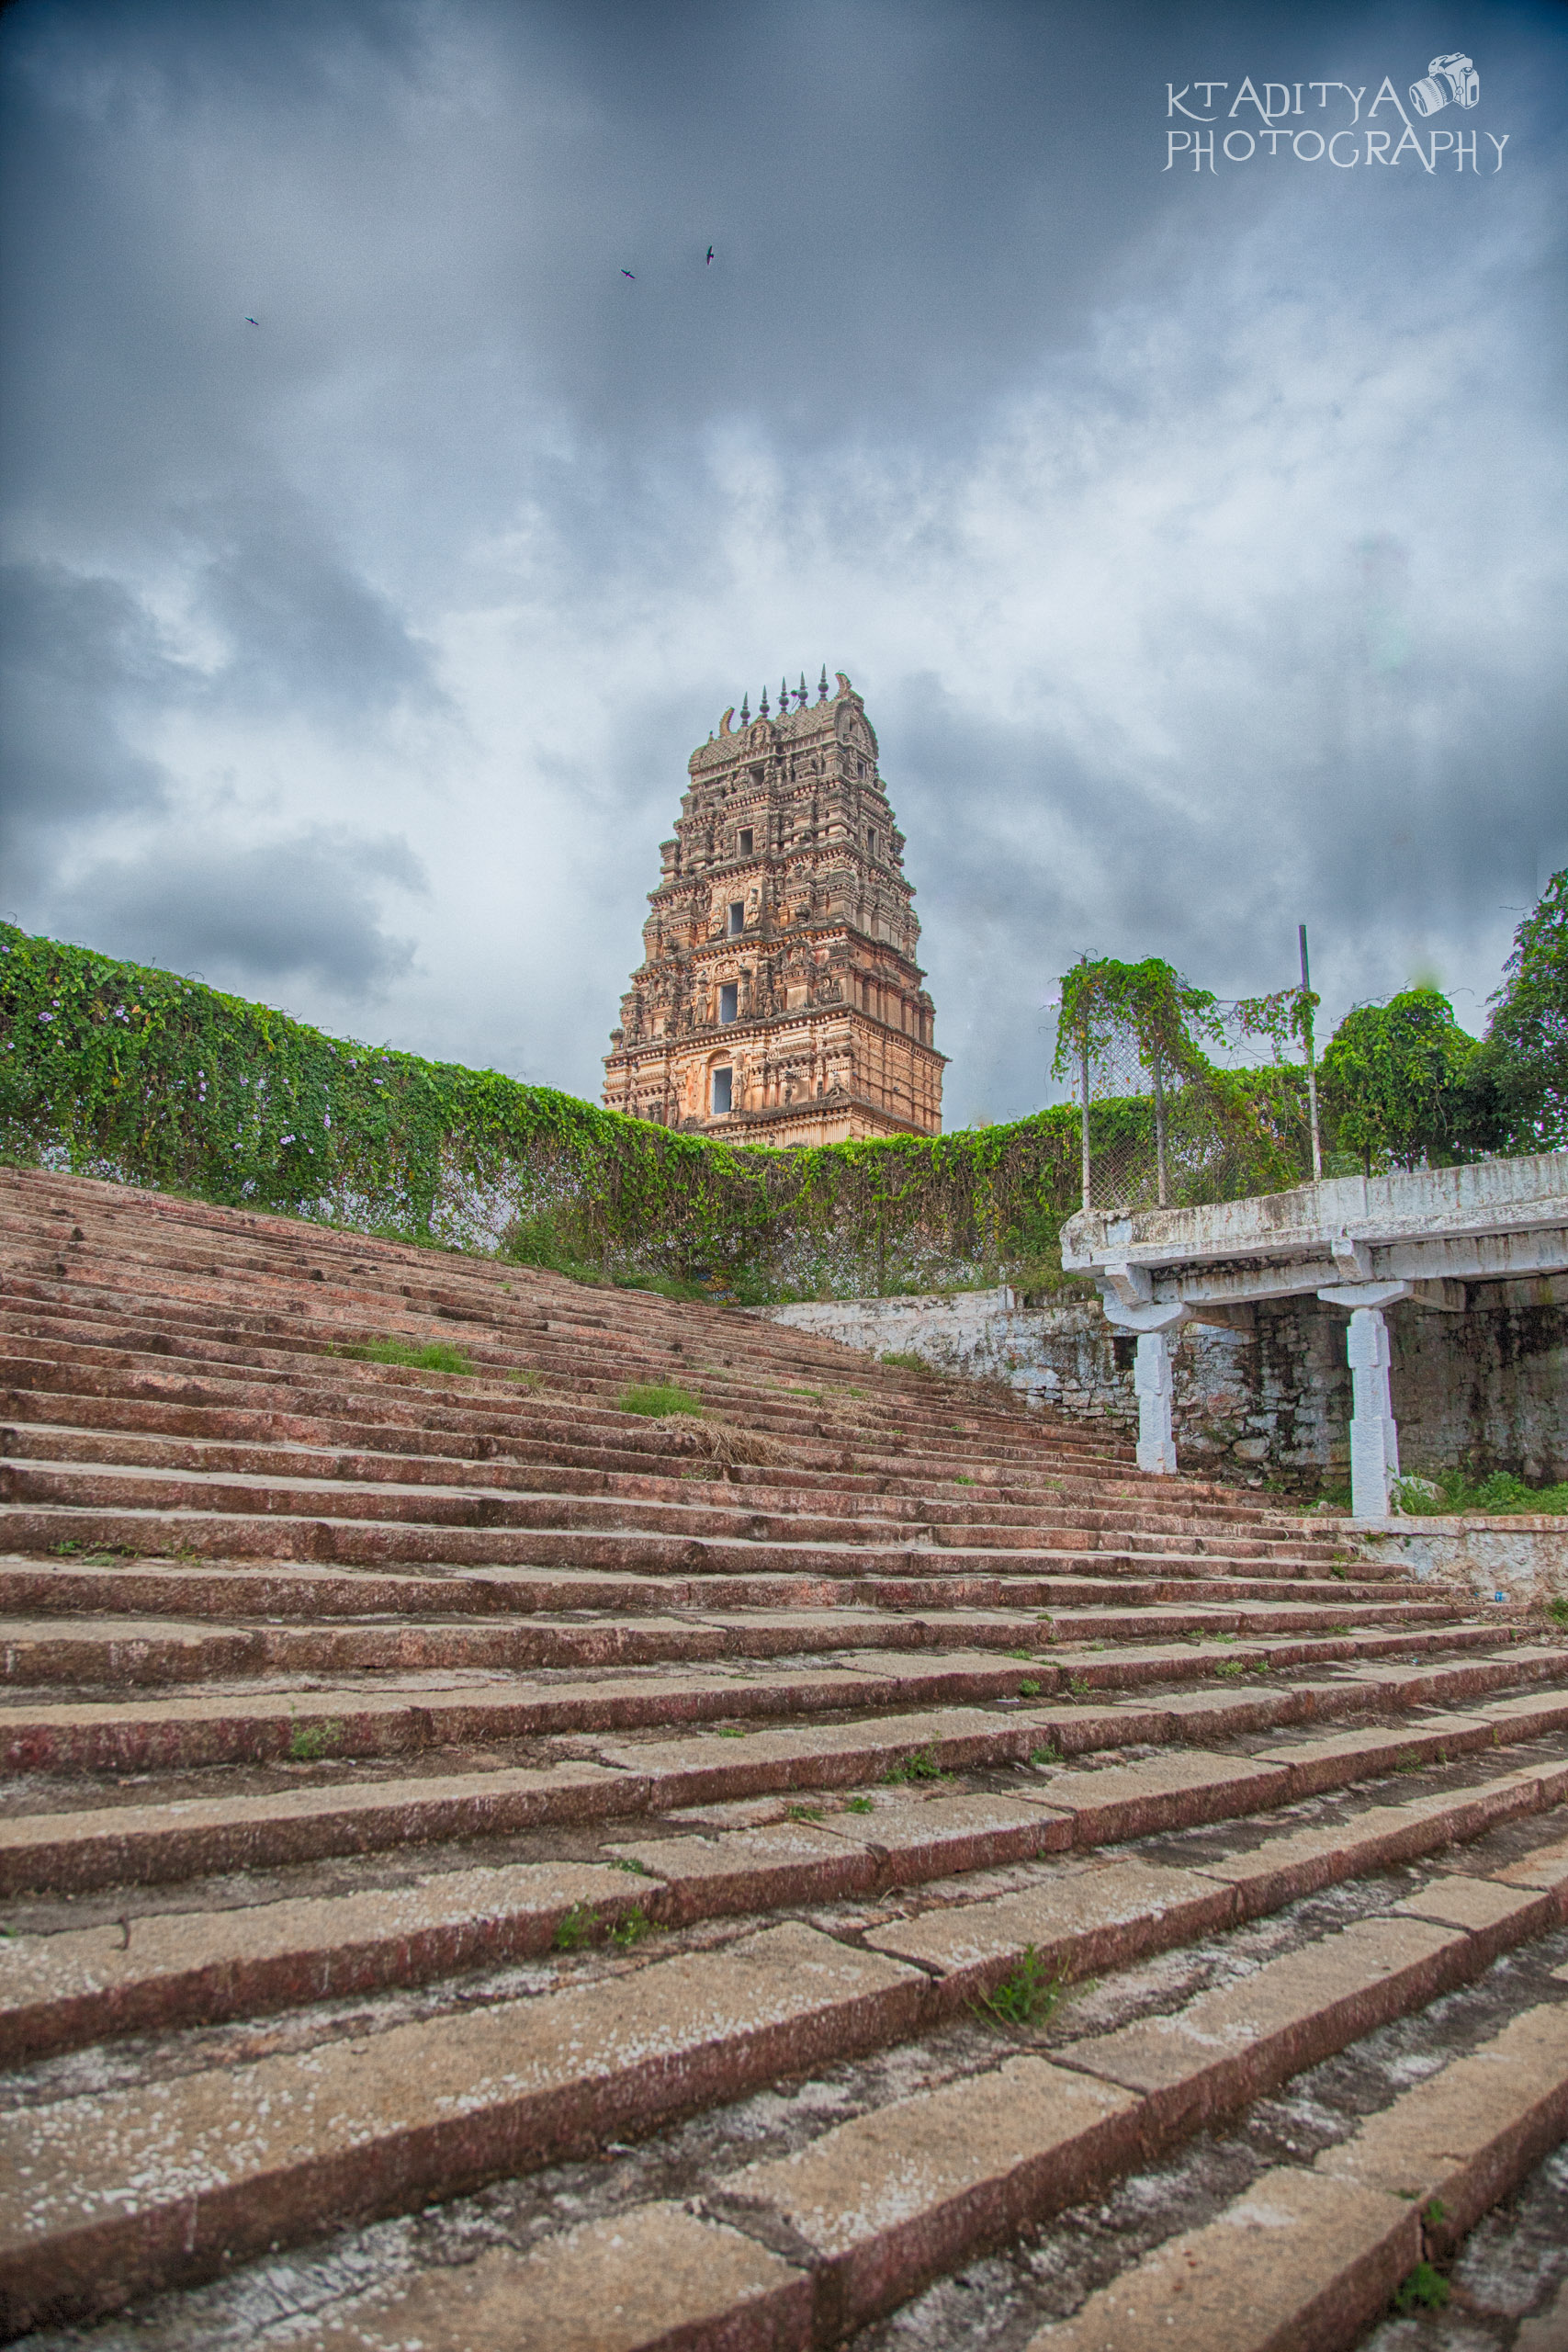 The temple is believed to be more than 1600 years old built during the Mighty Choola Dynasty by King Deyunge. The idols in the temples are believed to be from the Ancient time of Treta Yug( The age of Sri Raama) when Lord Raama was looking for Sita who was Kidnapped by Demon Raavana. The idols do not have Lord Hanuman as it is believed this was even before Raama had met him.